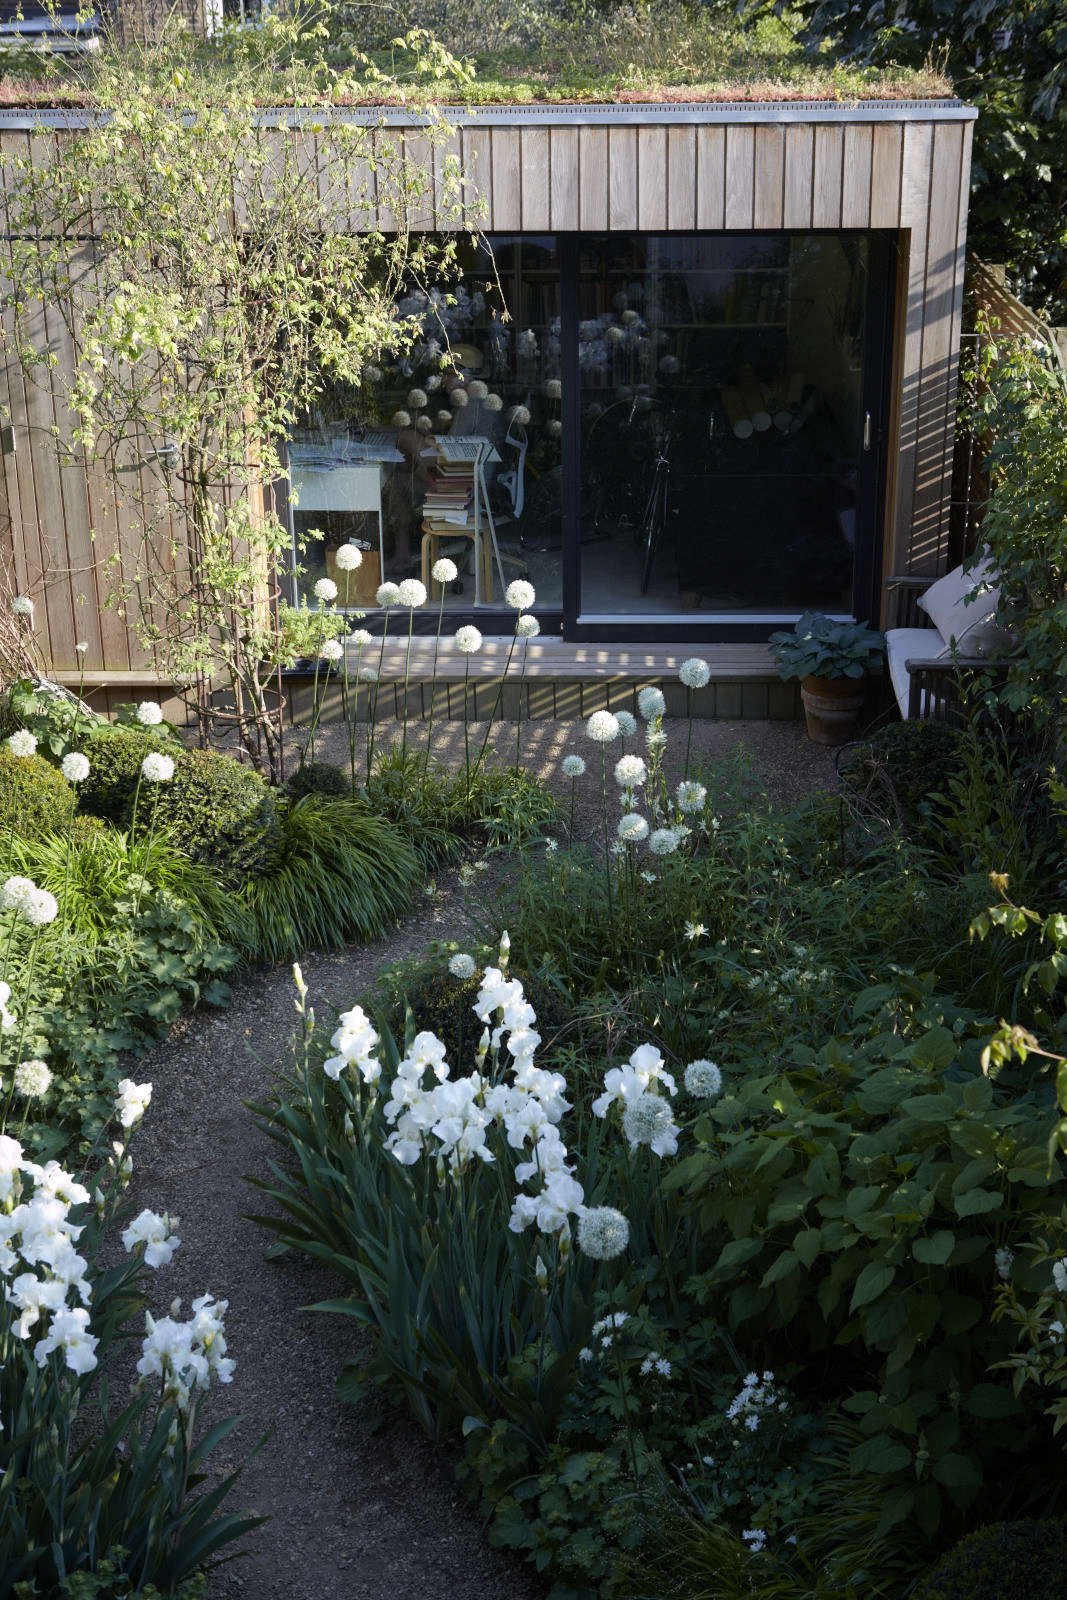 A work studio faces the house in Sheila Jack's garden in Hammersmith, London.